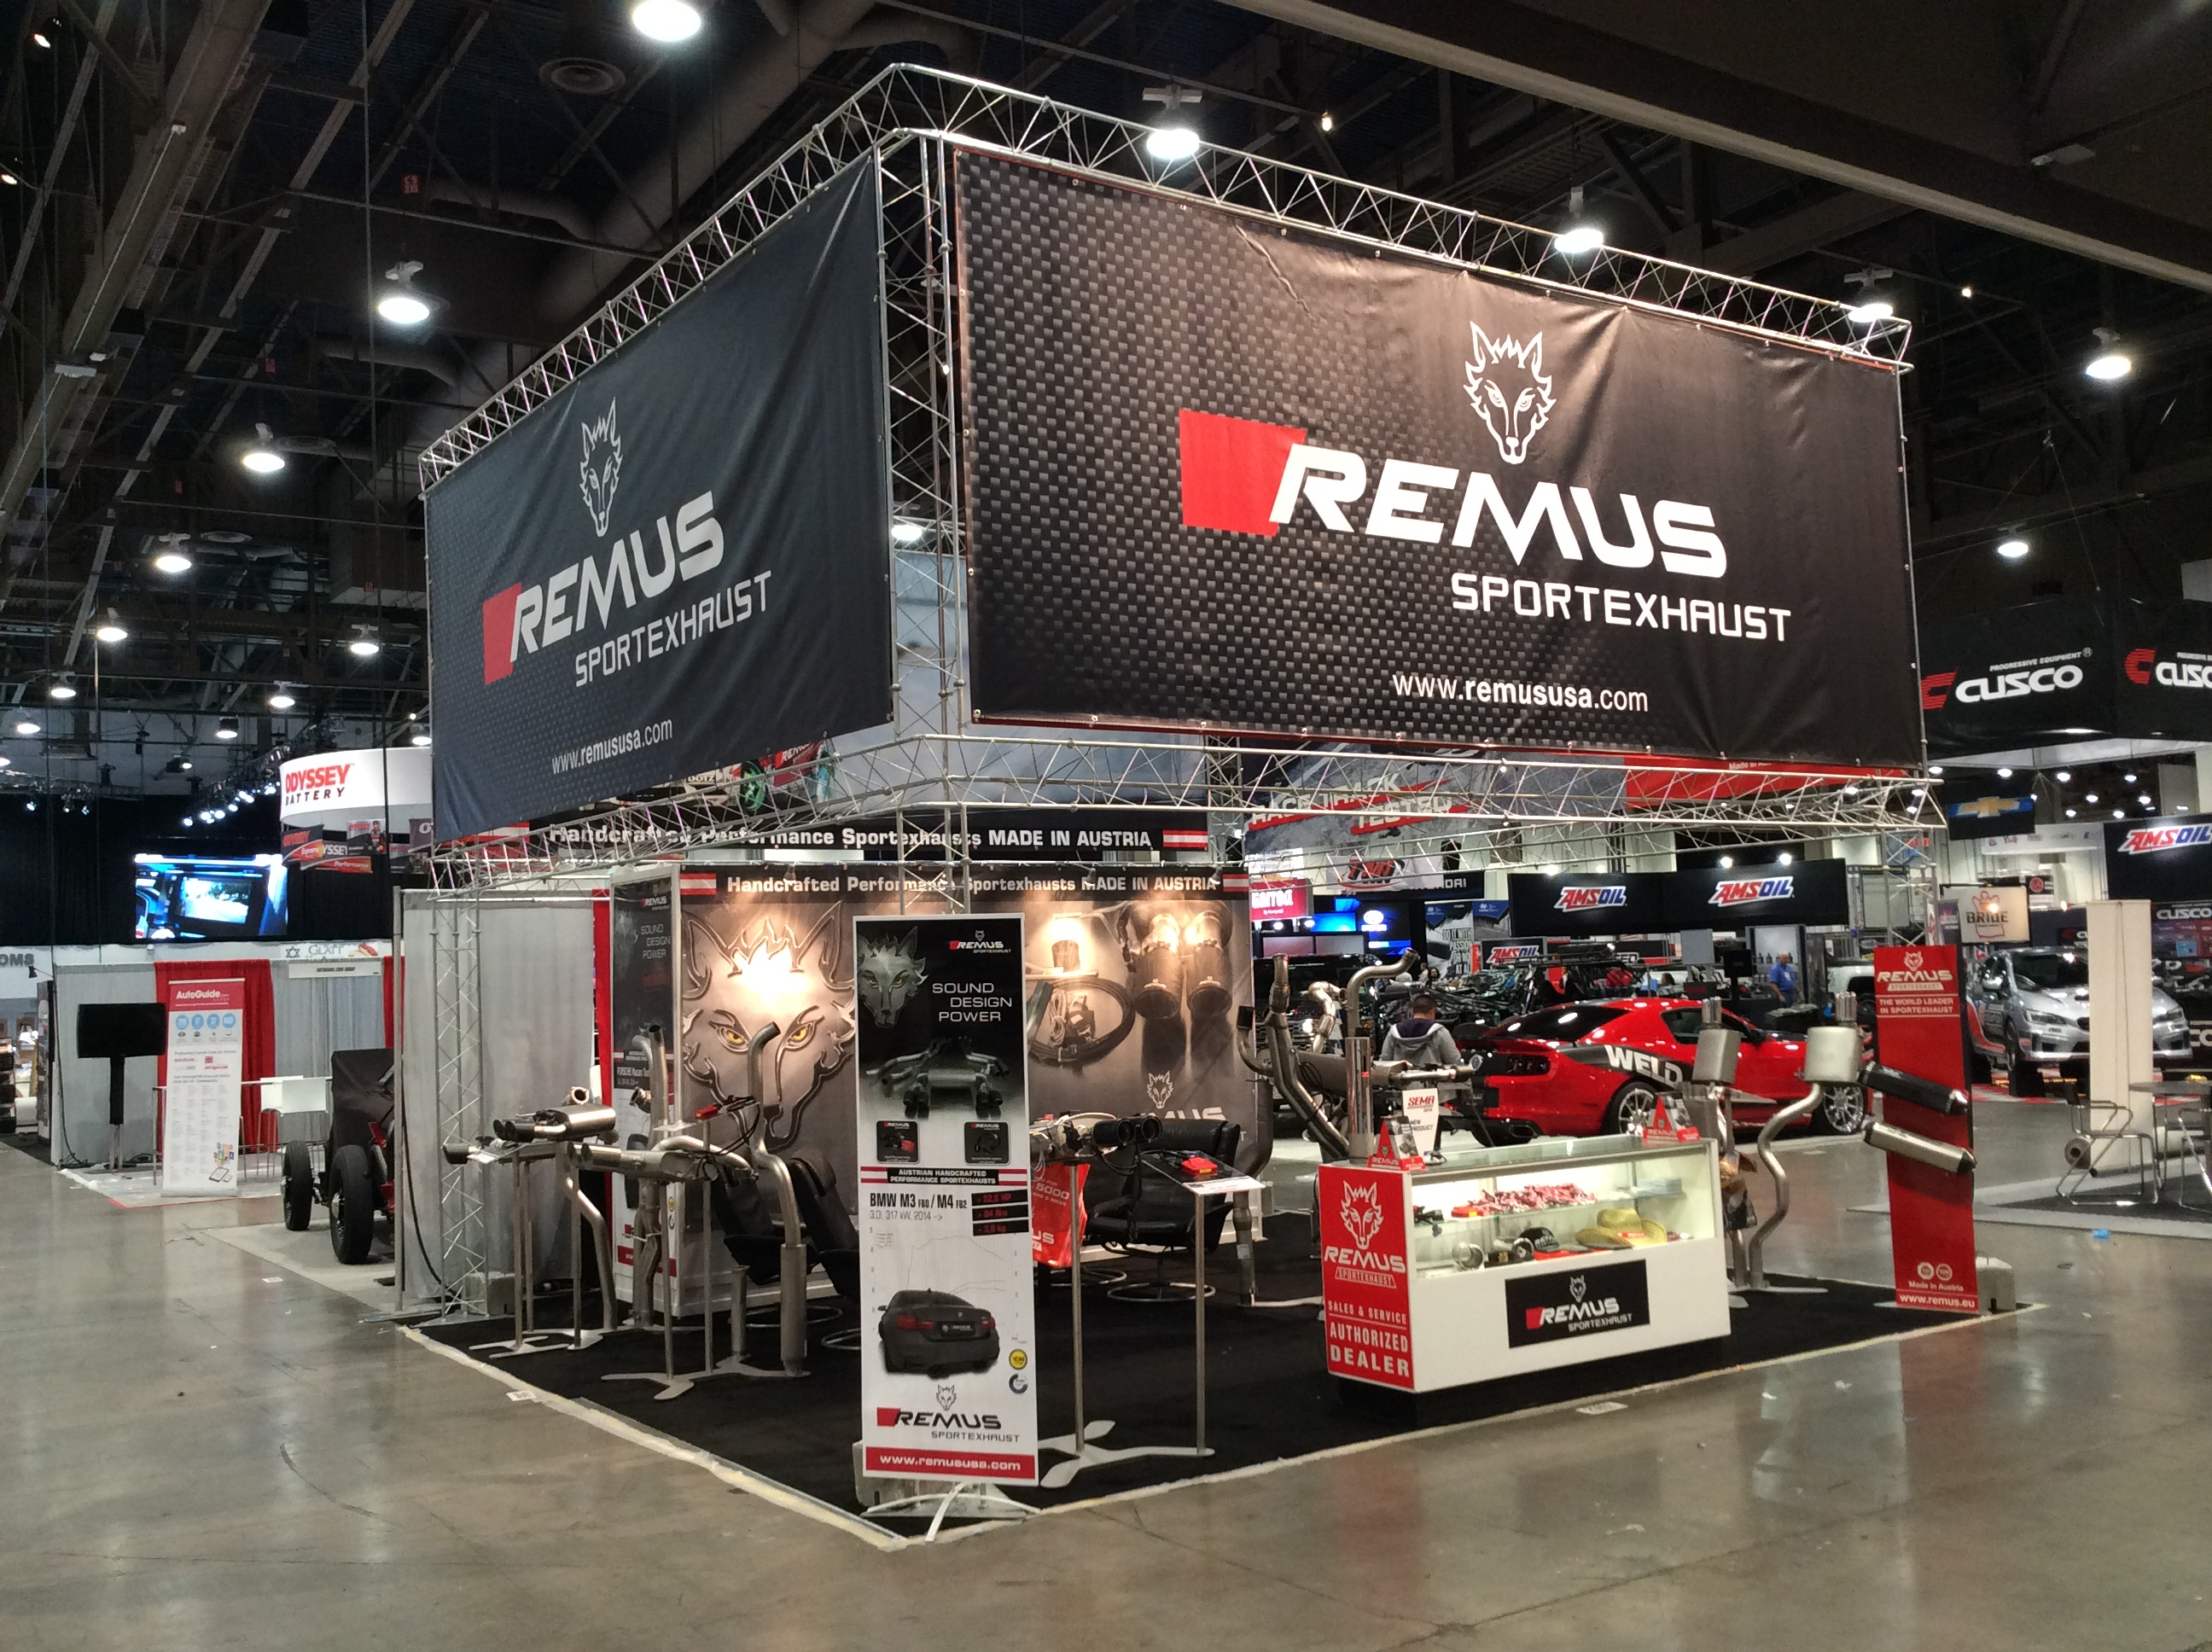 The 2017 Sema Show Runs From 3rd To 6th Of November And In Racing Performance Hall Stand 24823 Remus Shows Off Latest Sportexhaust